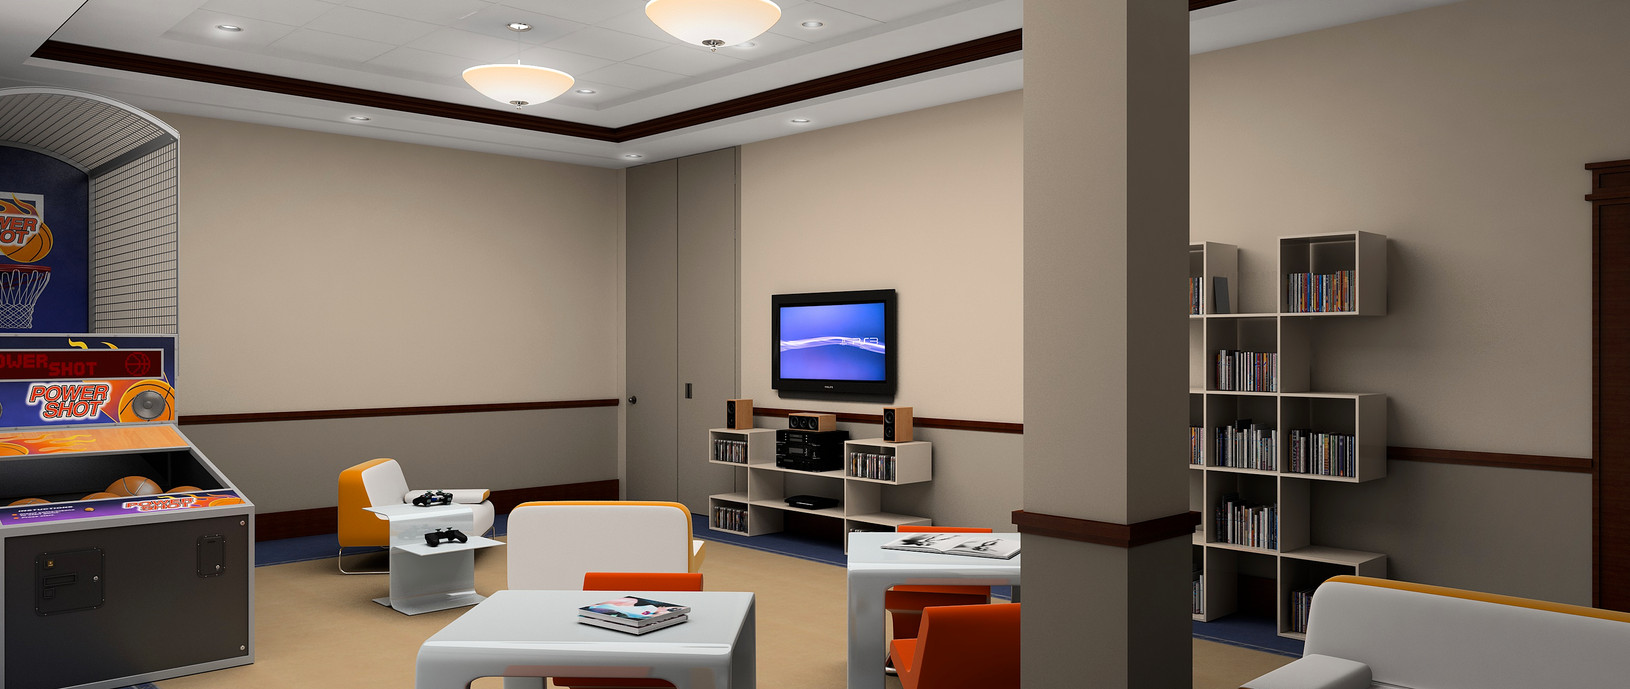 Temple Emanuel - LL youth lounge.jpg